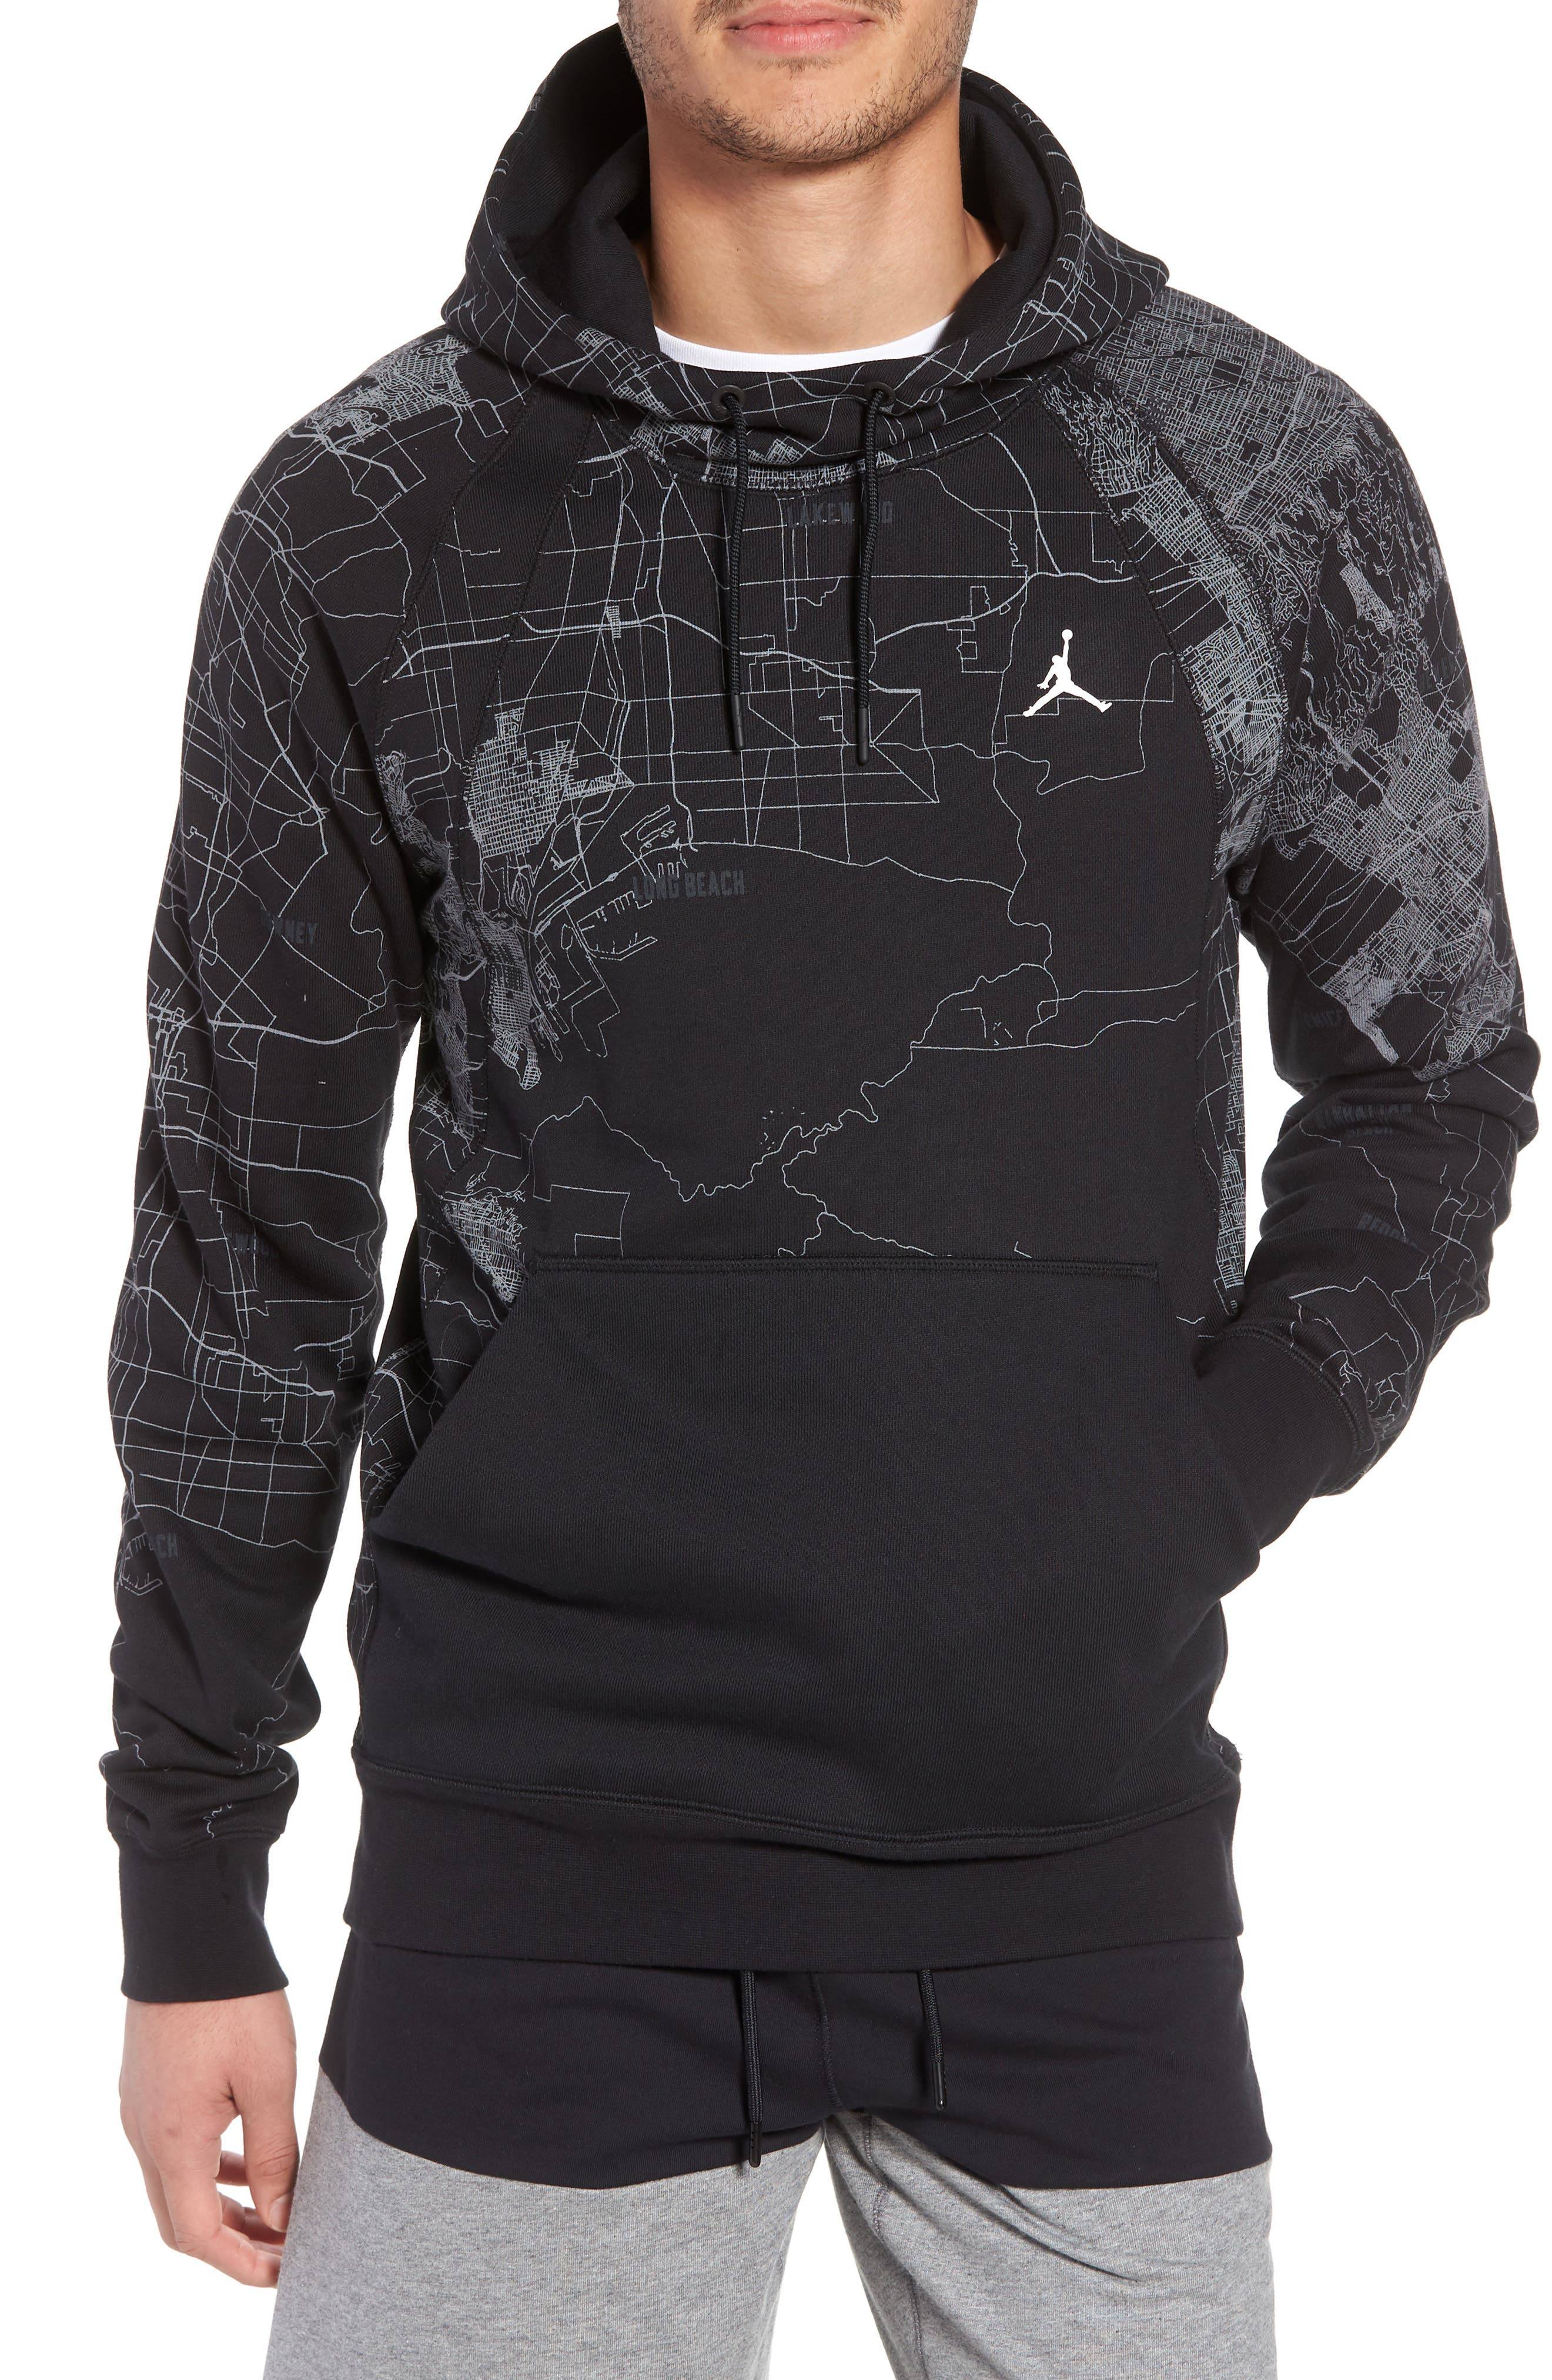 Wings Graphic Hoodie,                             Main thumbnail 1, color,                             Black/ White